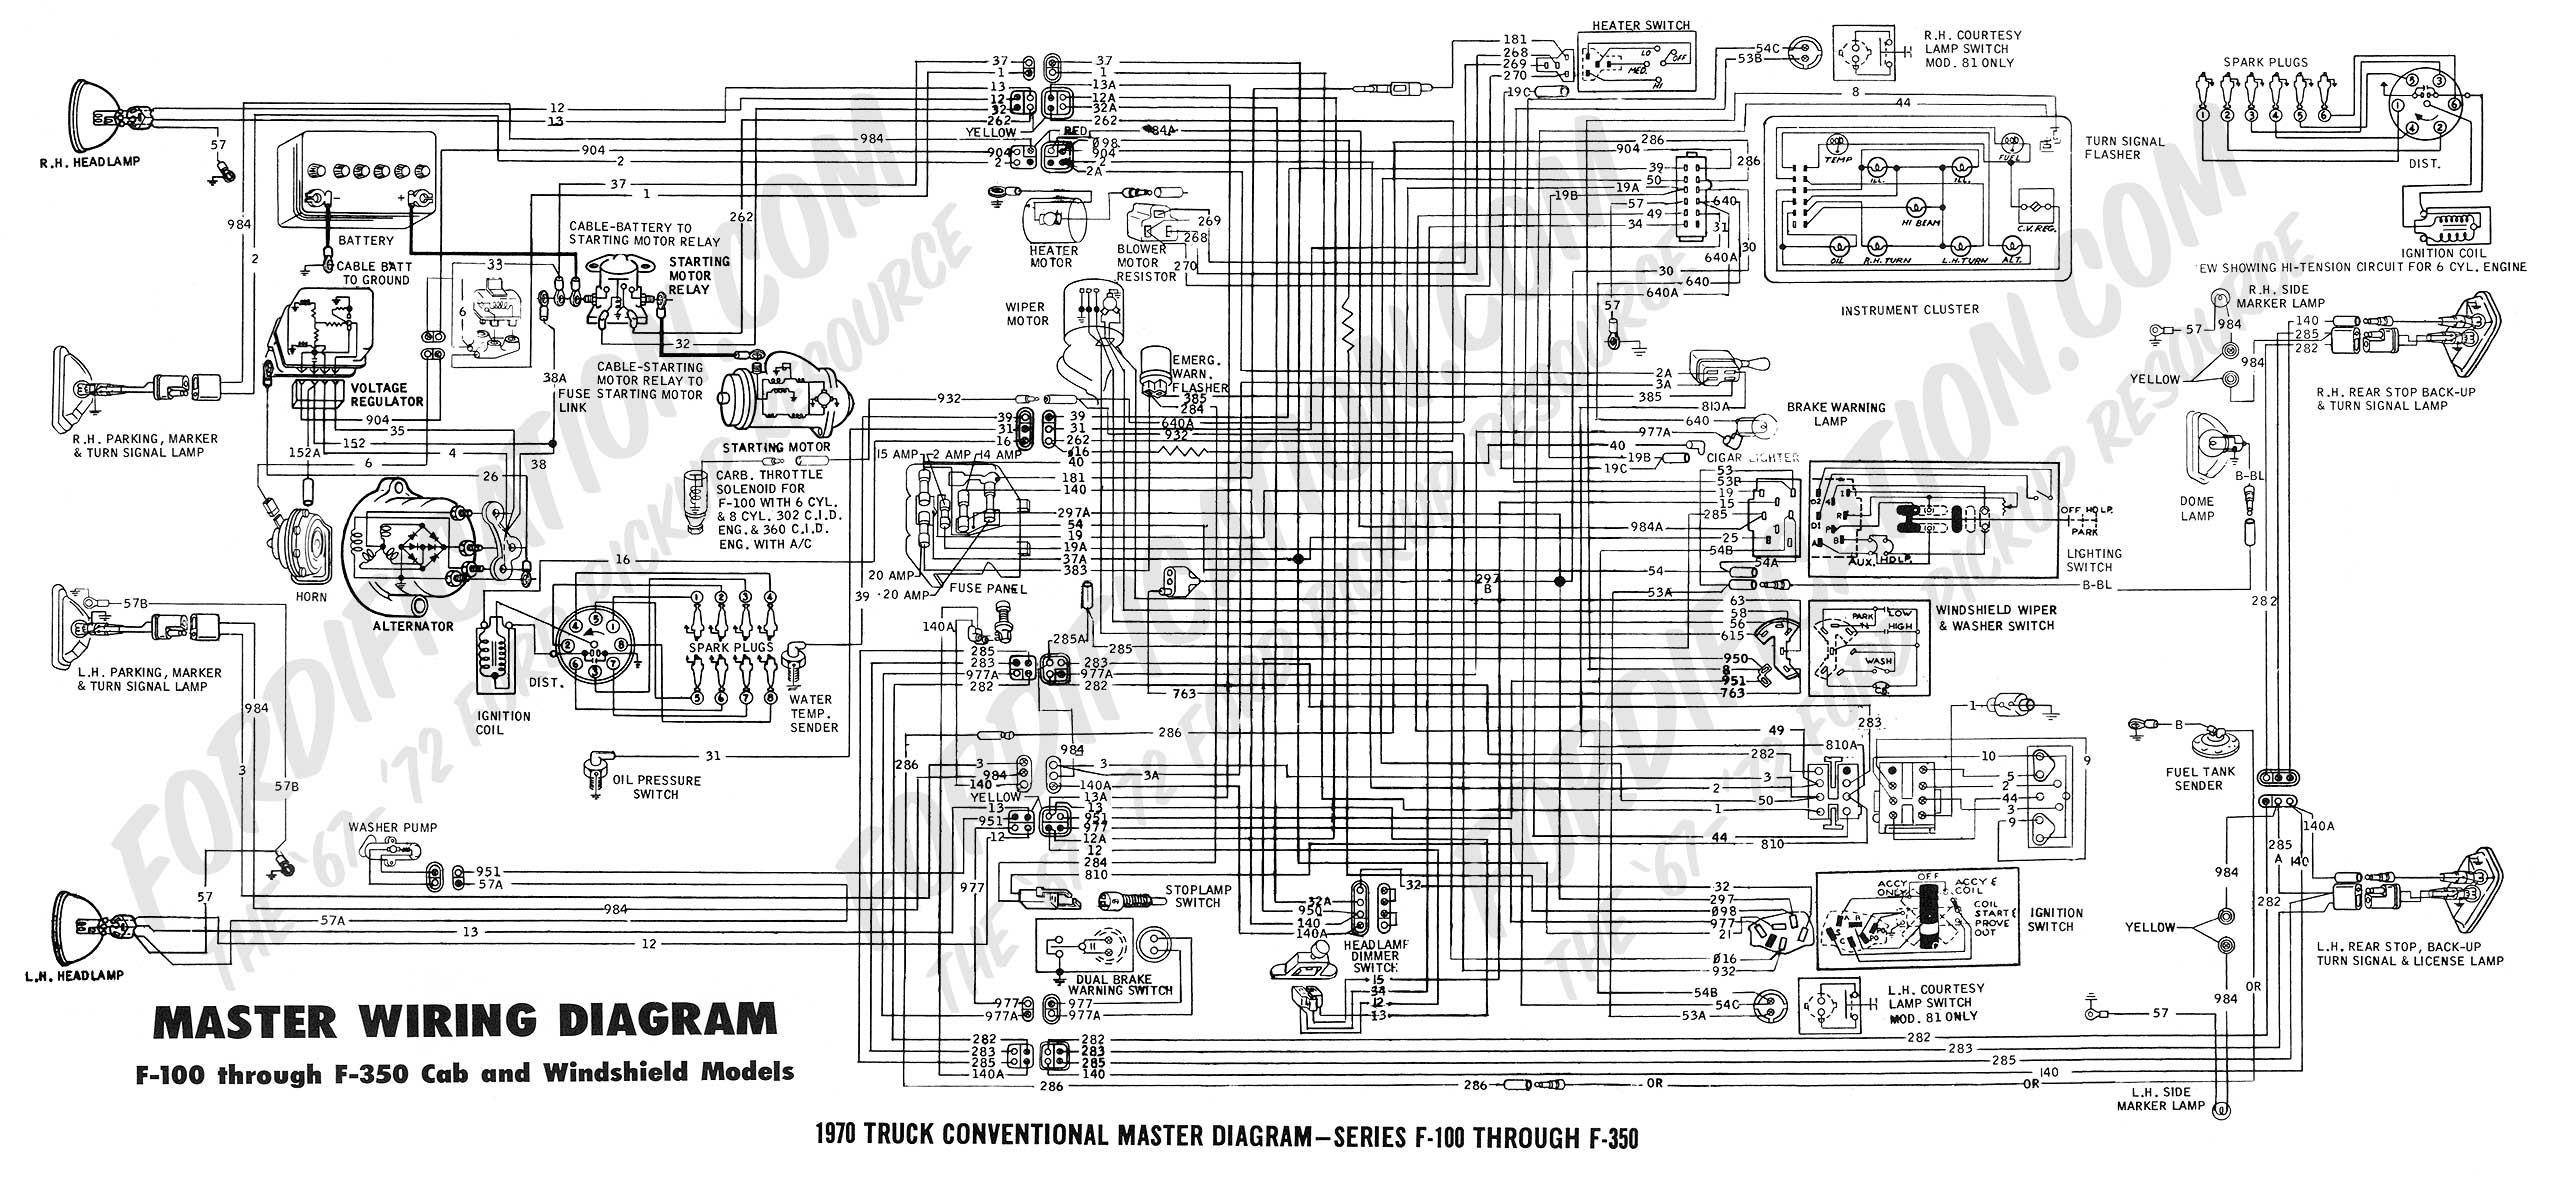 f250 wiring diagram f250 image wiring diagram ford truck technical drawings and schematics section h wiring on f250 wiring diagram